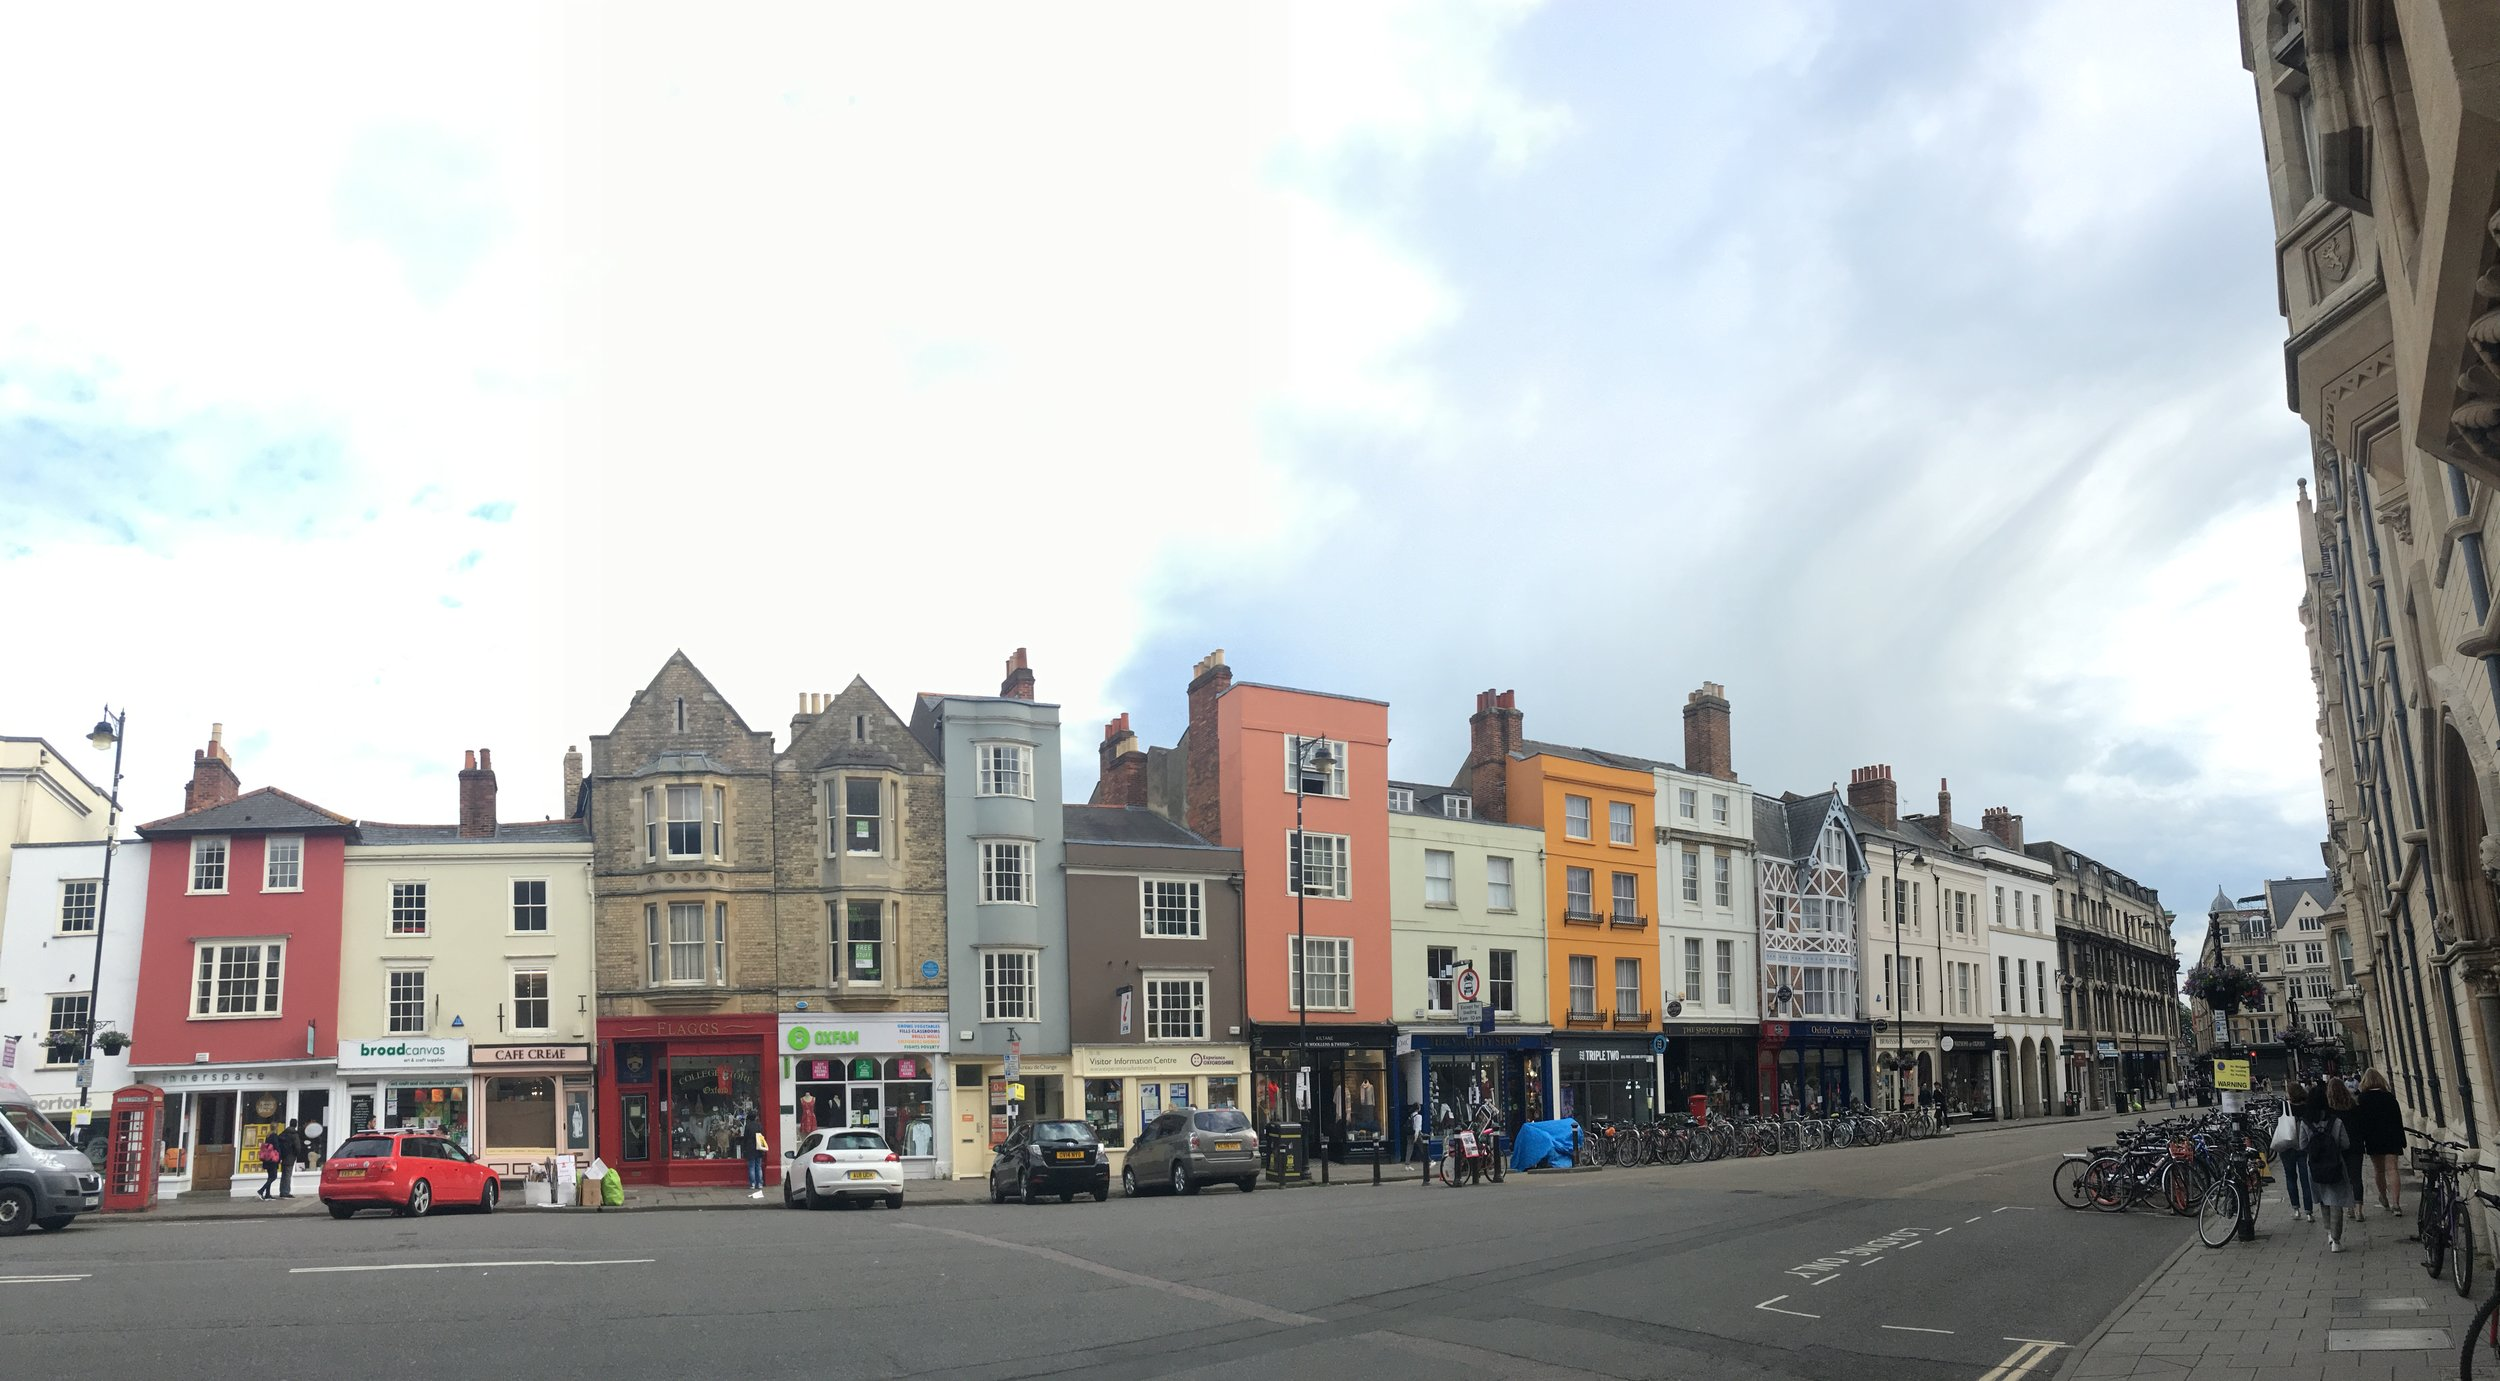 Panoramic view of Oxford streets